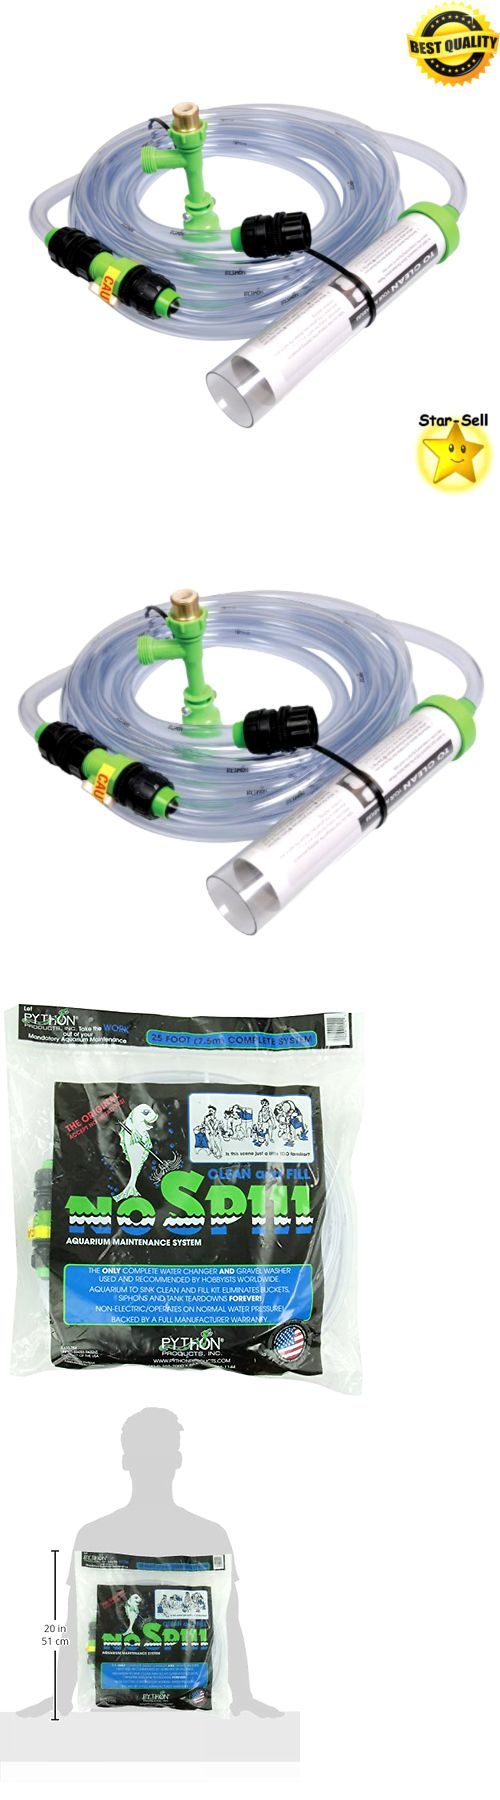 Aquarium fish tank complete system - Cleaning And Maintenance 148983 Aquarium Maintenance System Cleaner Fish Tank Cleaning Supplies 25 Foot Cord